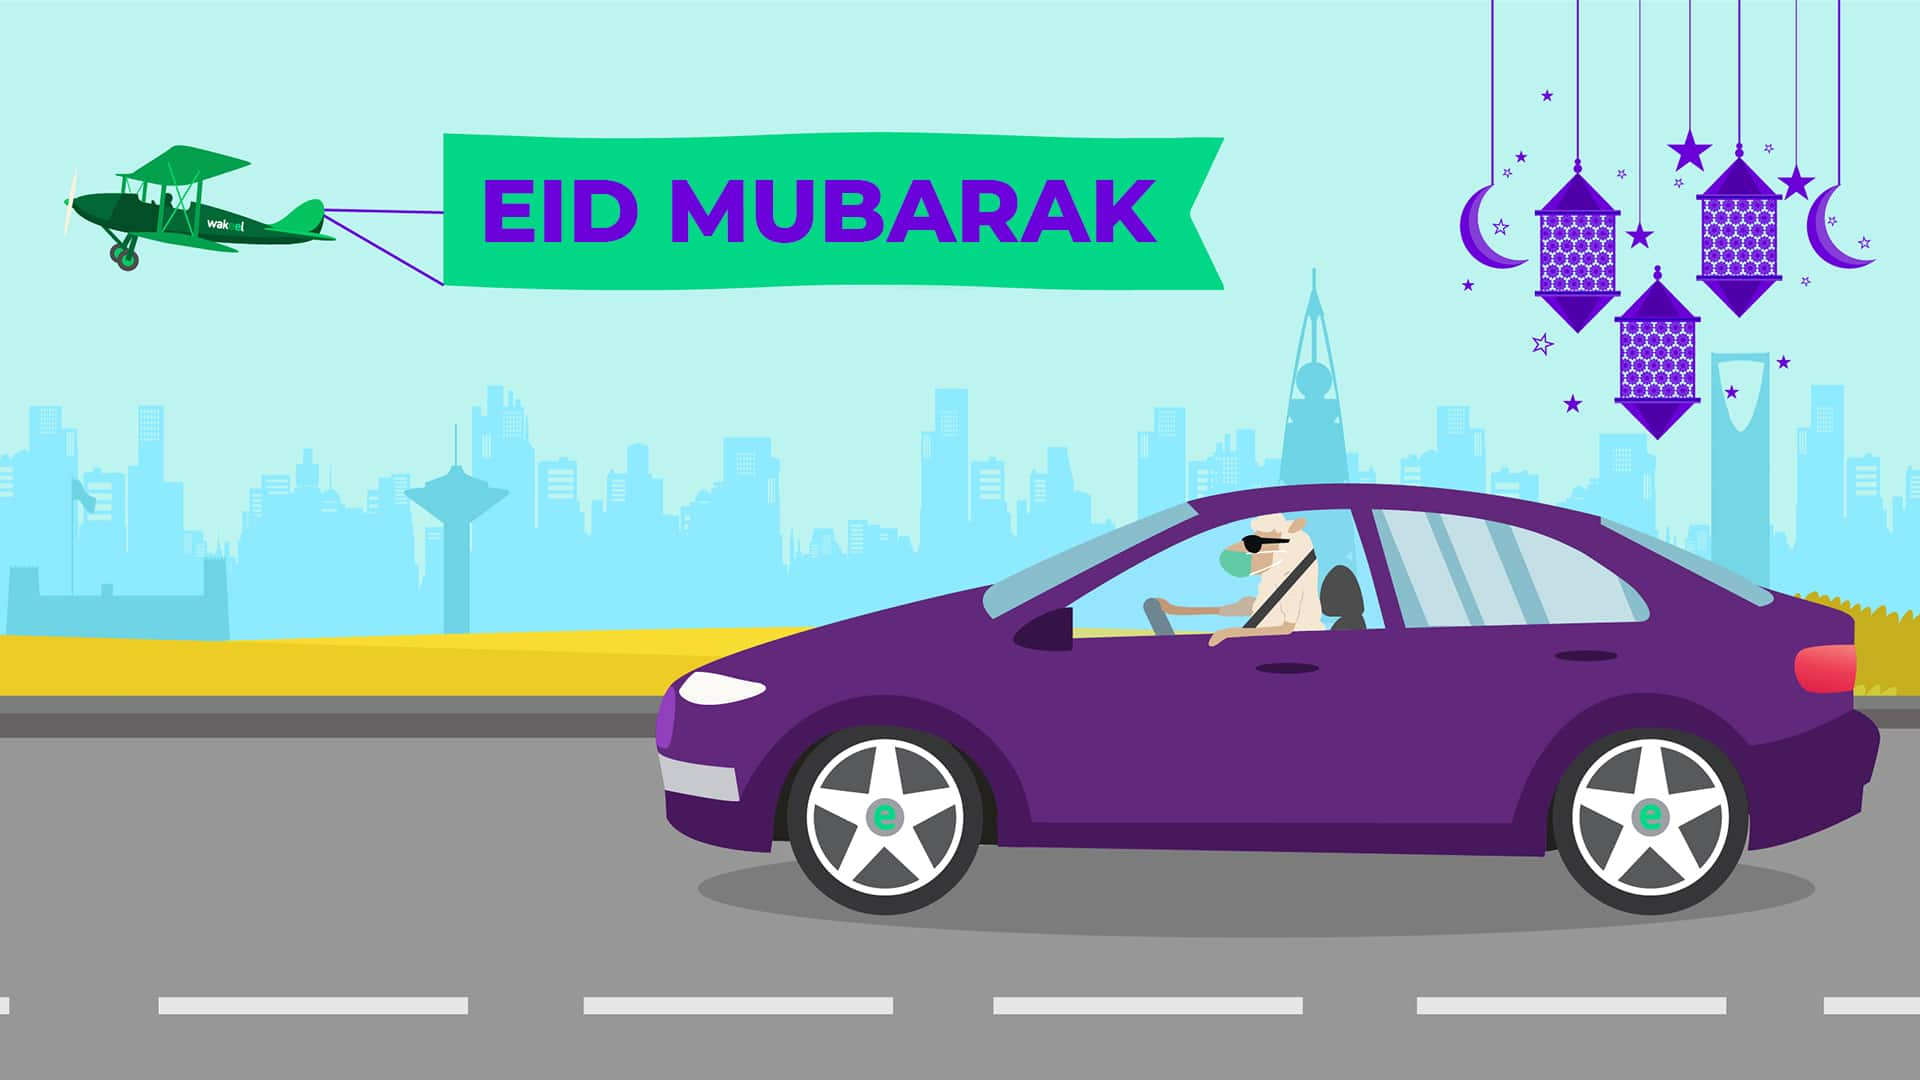 Celebrating Eid al-Adha with cautious during Covid-19 Pandemic